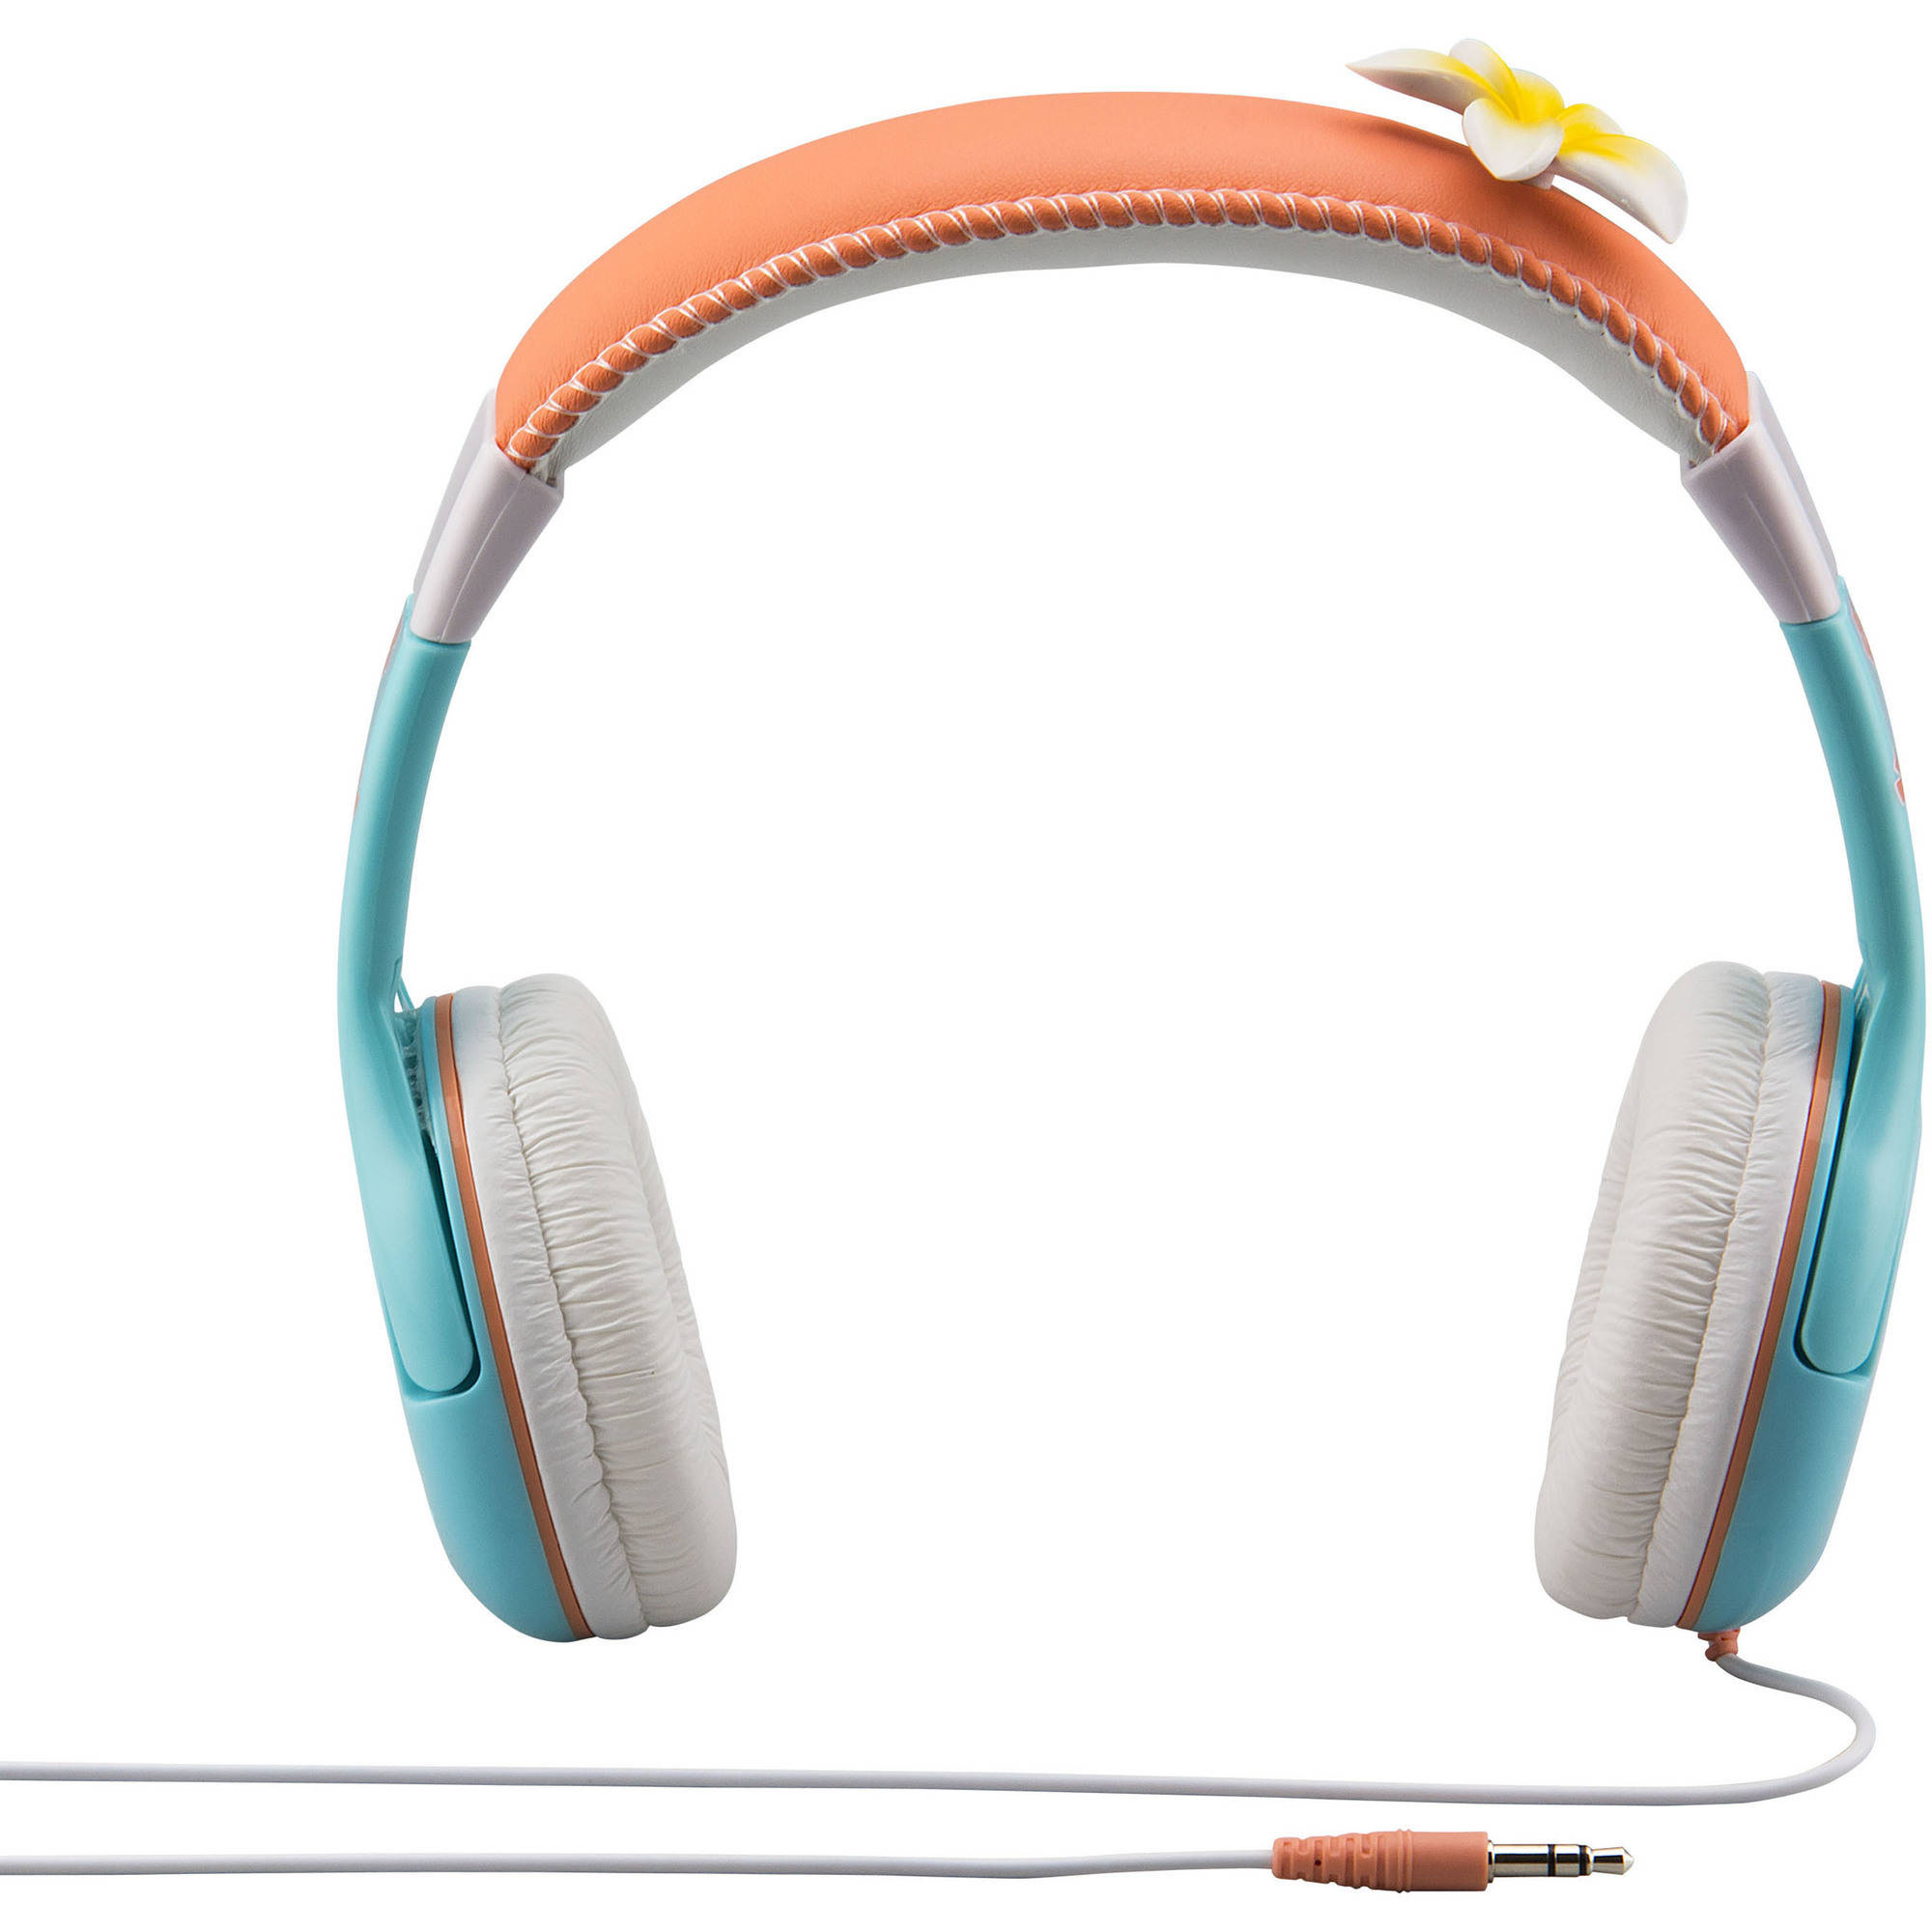 Disney Moana Islander Over the Ear Headphones